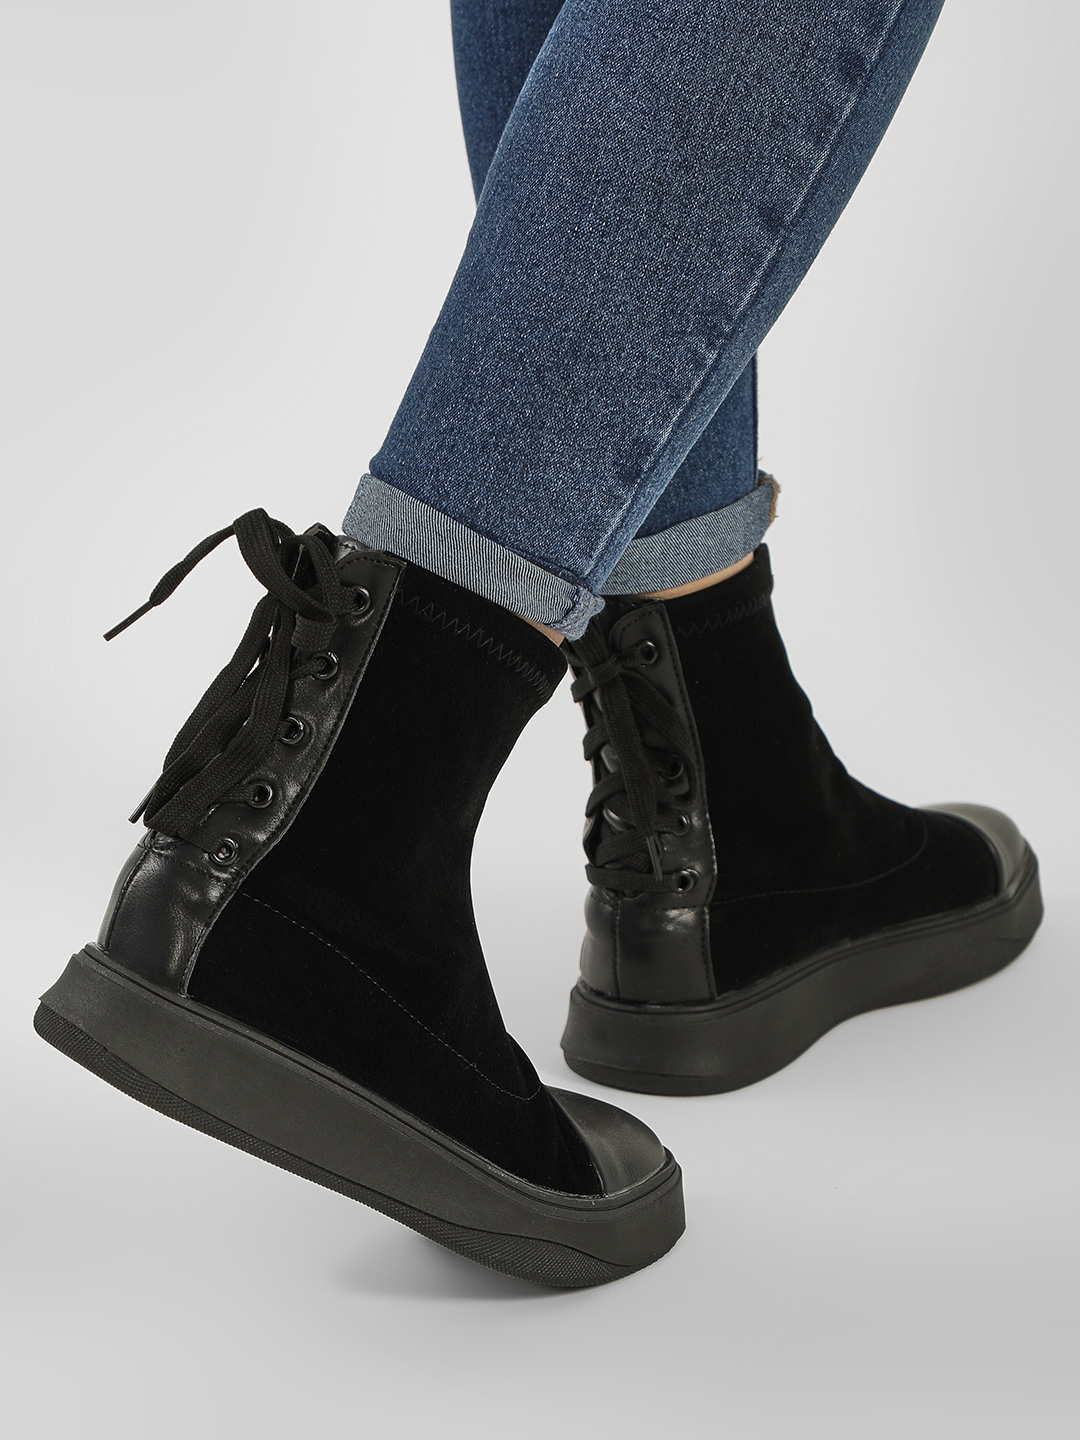 No Doubt Black Chunky Sole Suede Finish Boots 1